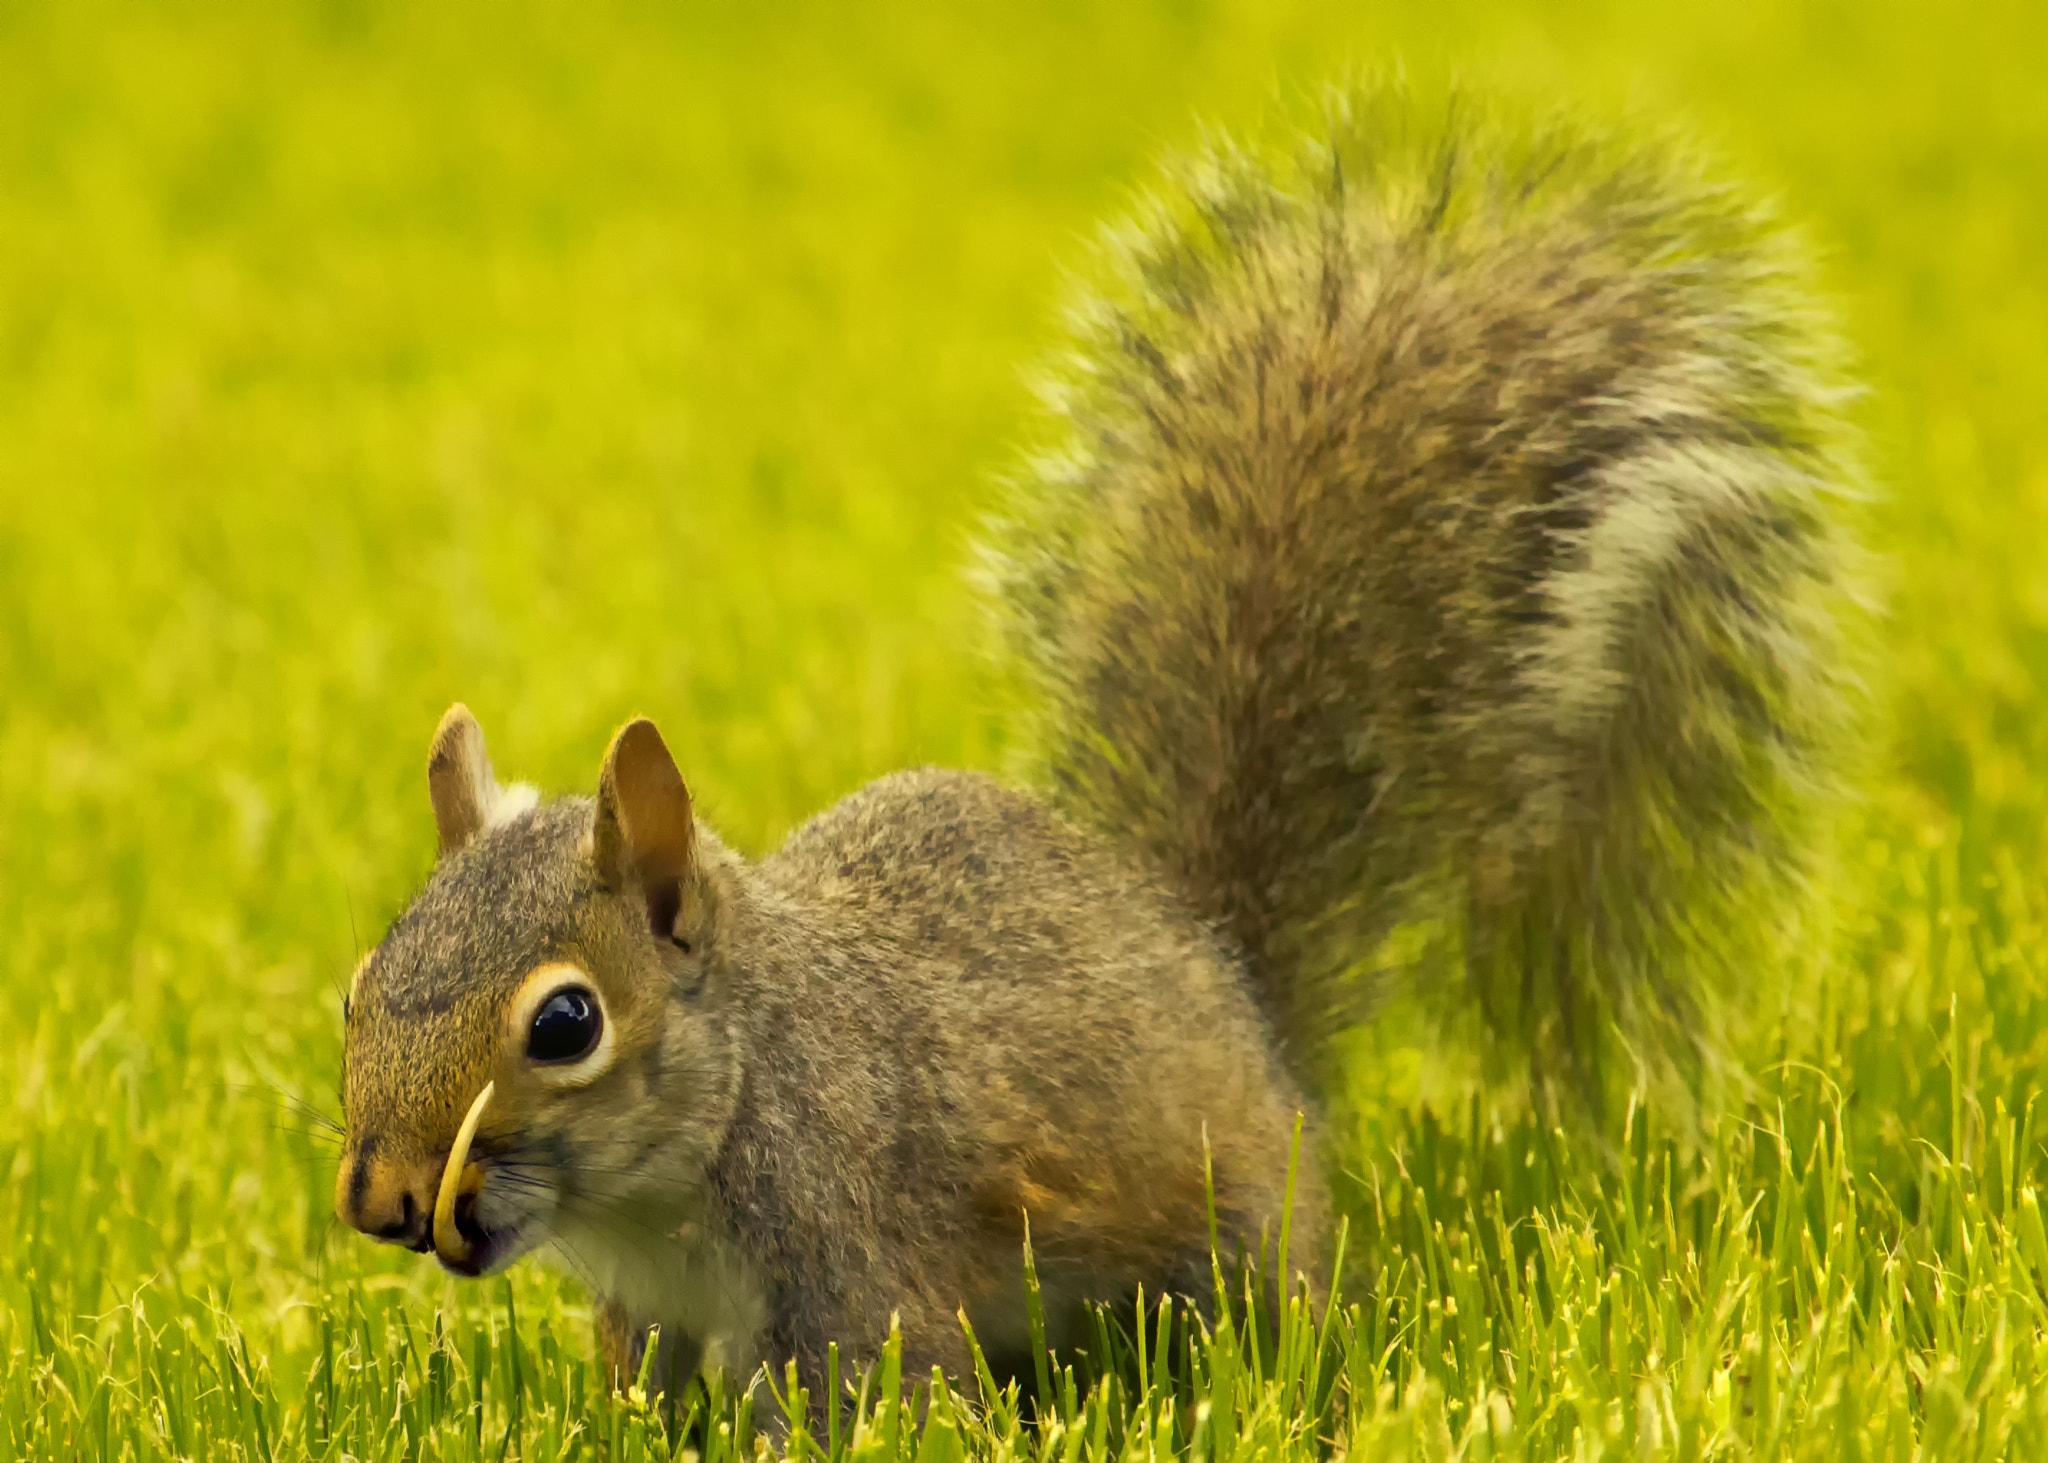 Photograph Snaggletooth Squirrel in Grass by Bill Tiepelman on 500px